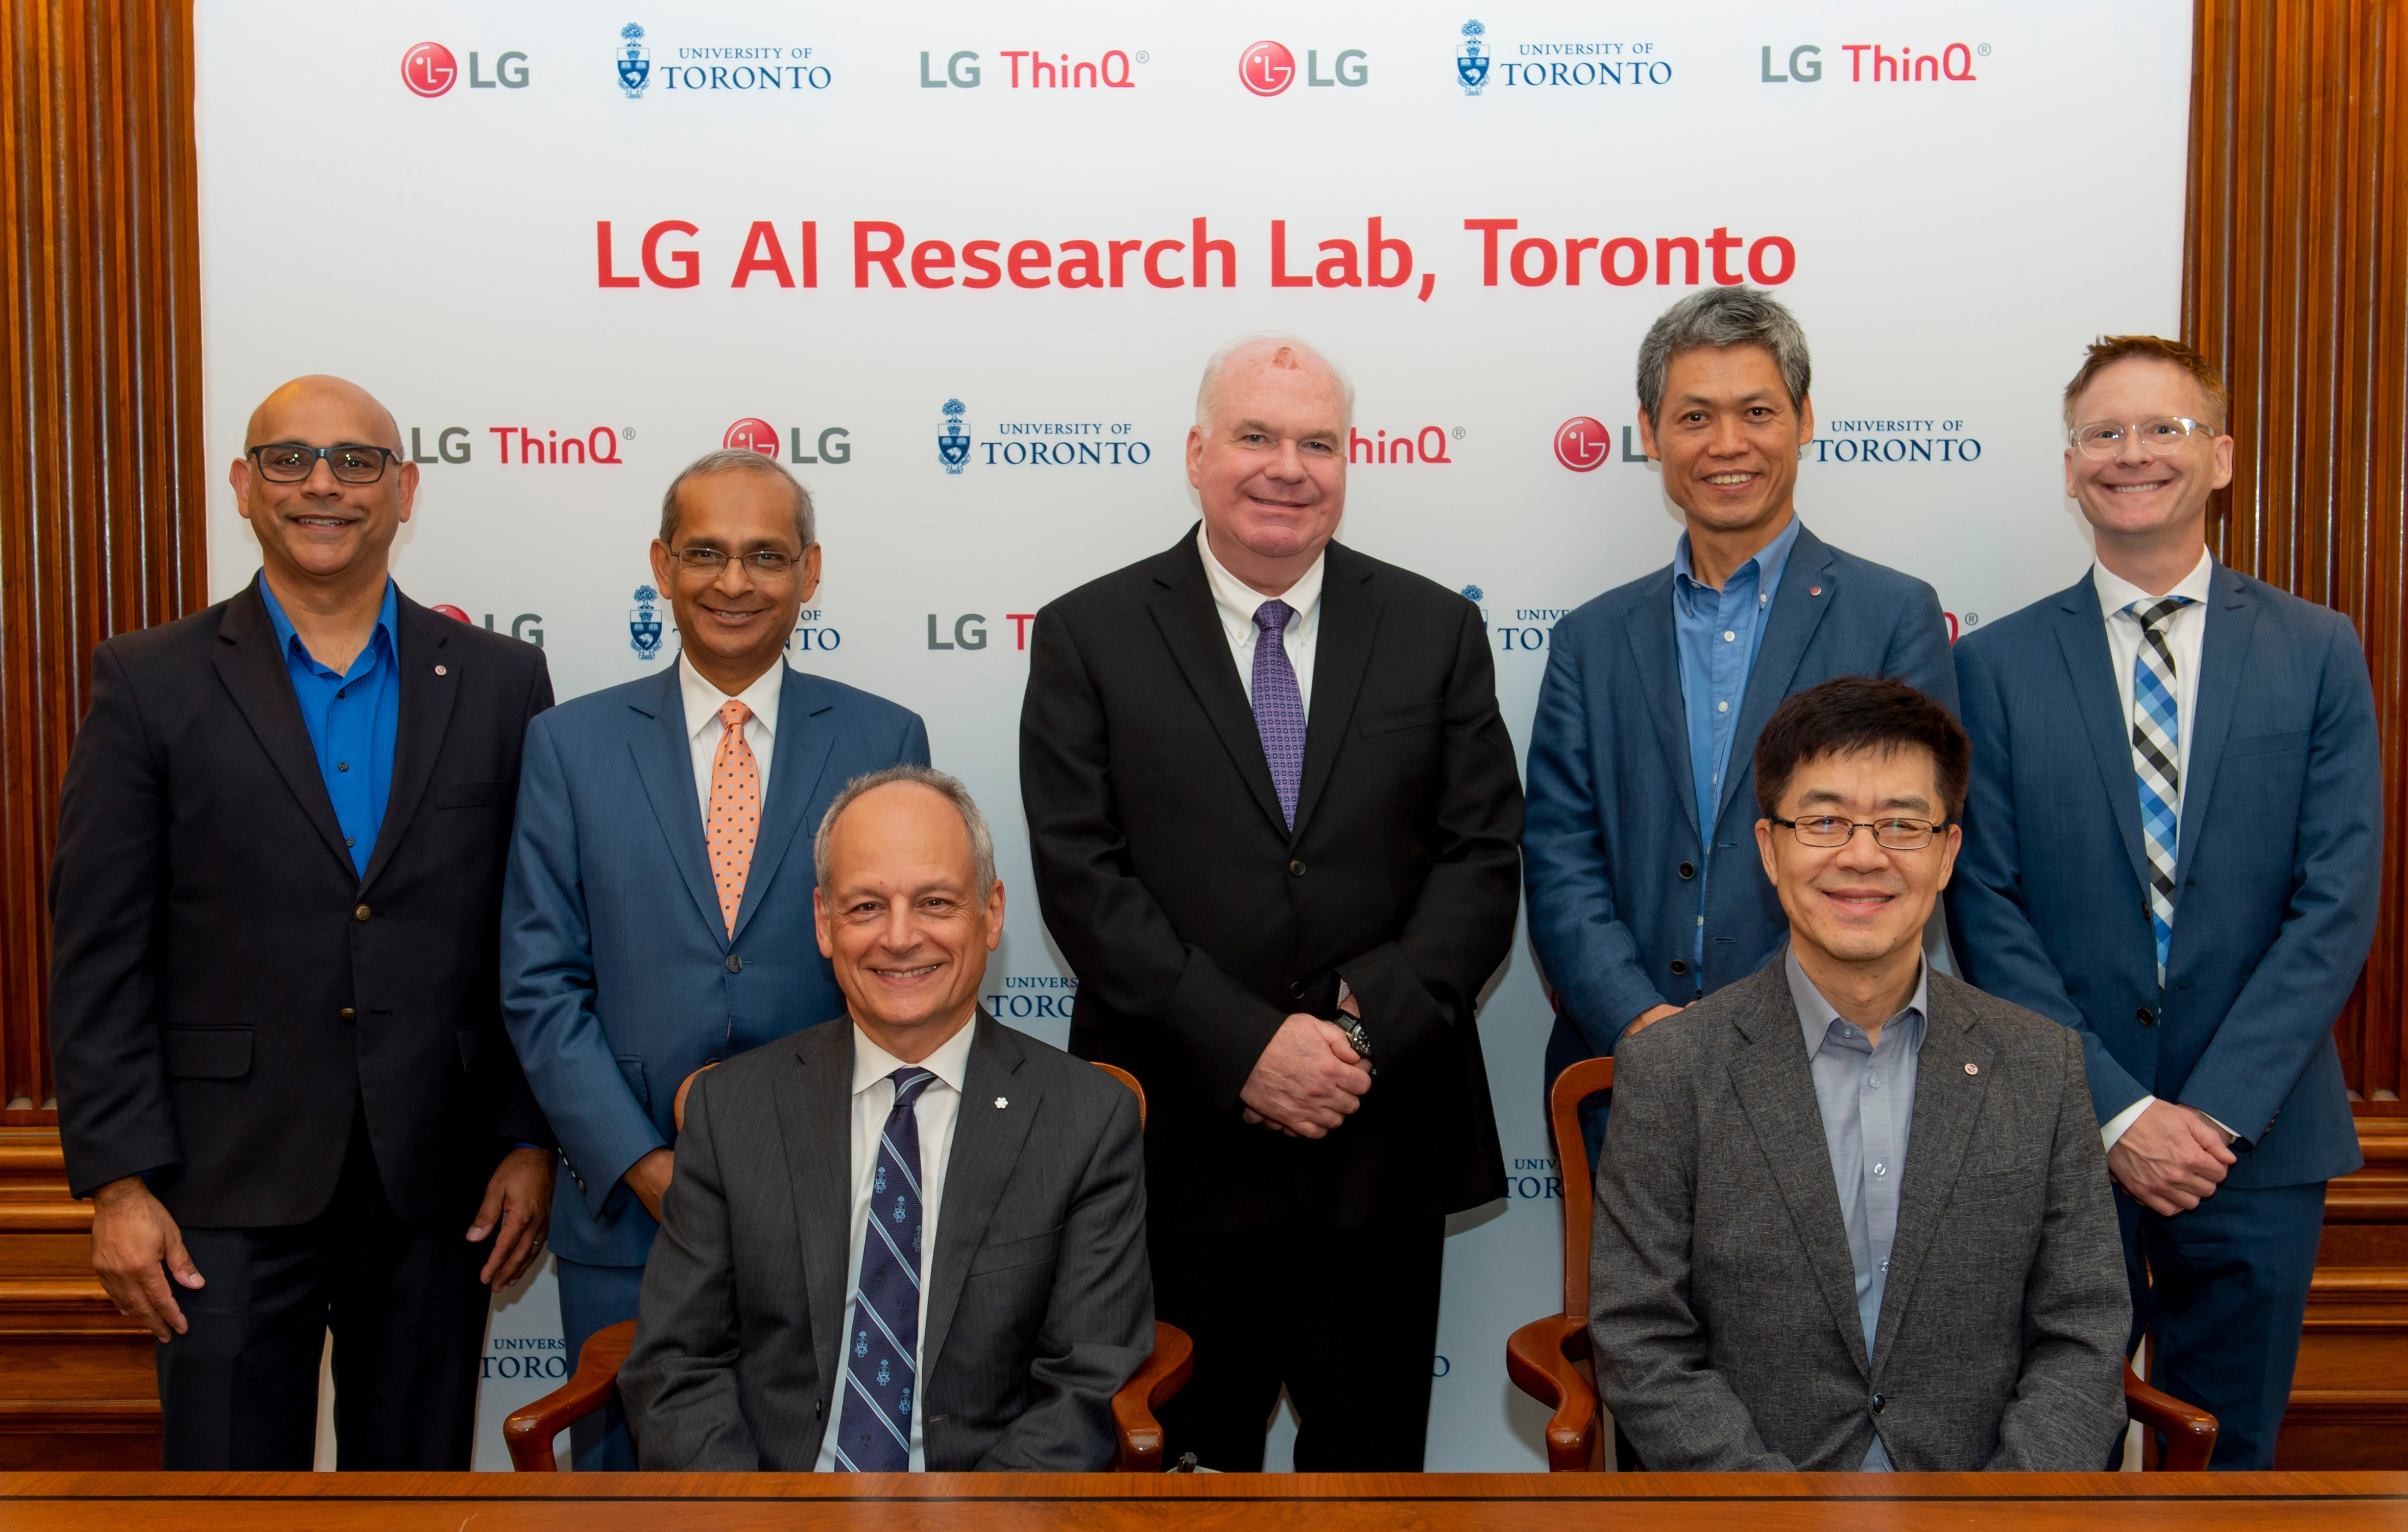 LG Electronics president and chief technology officer, Dr. I.P. Park, and University of Toronto president Meric Gertler, pose with delegates for a group picture.